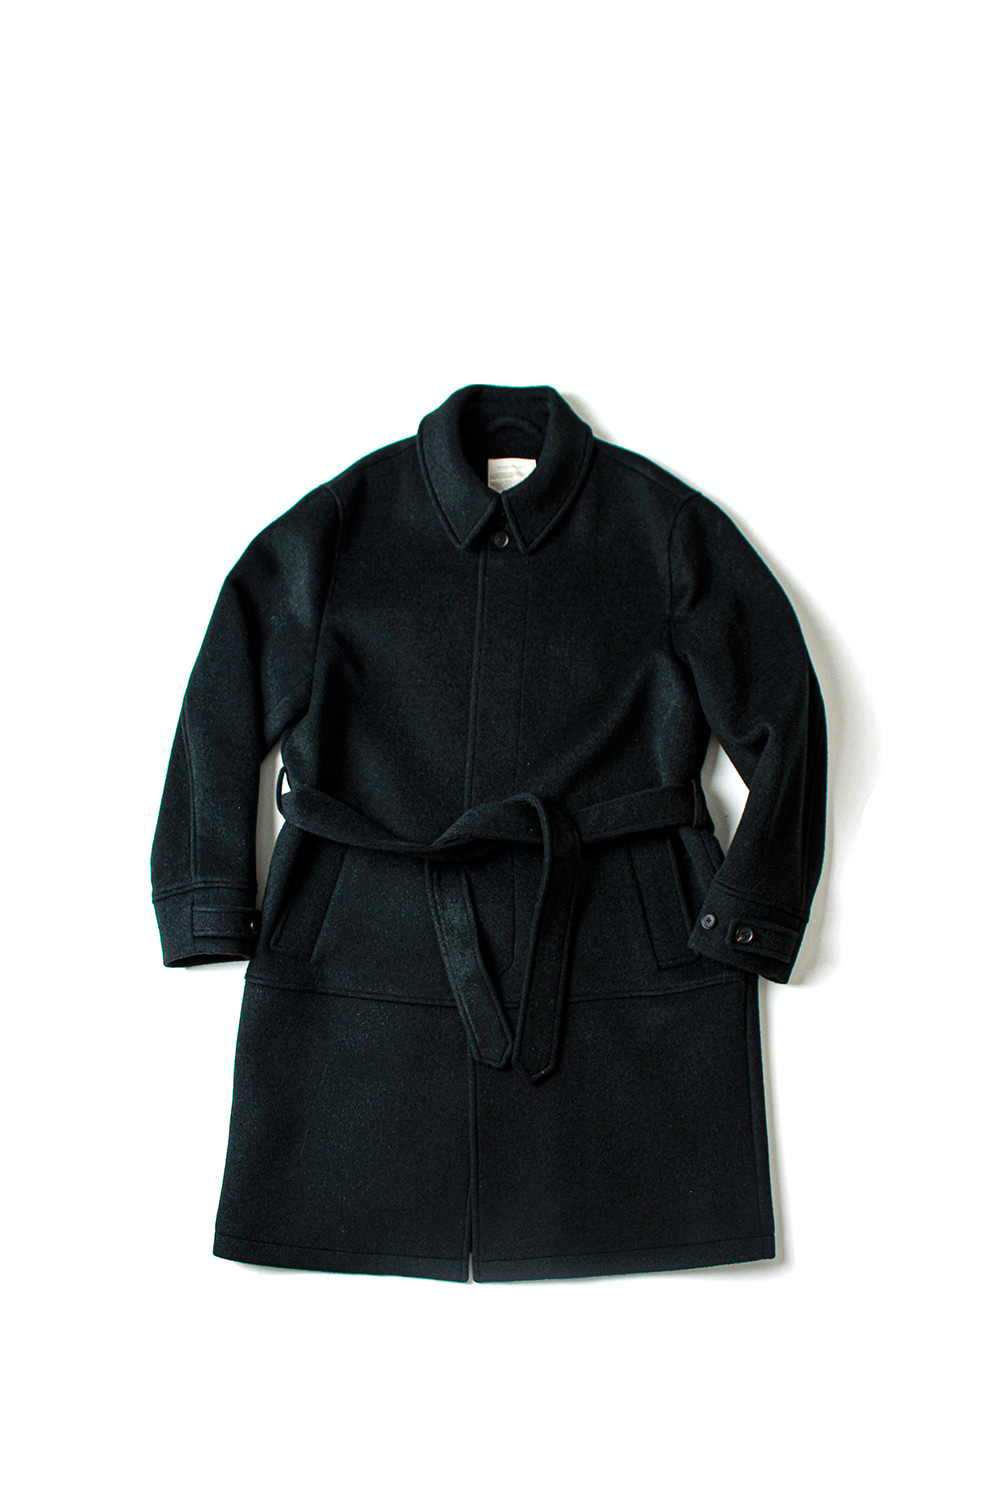 [Ourselves] BELTED MAC COAT (NIGHT CHARCOAL)